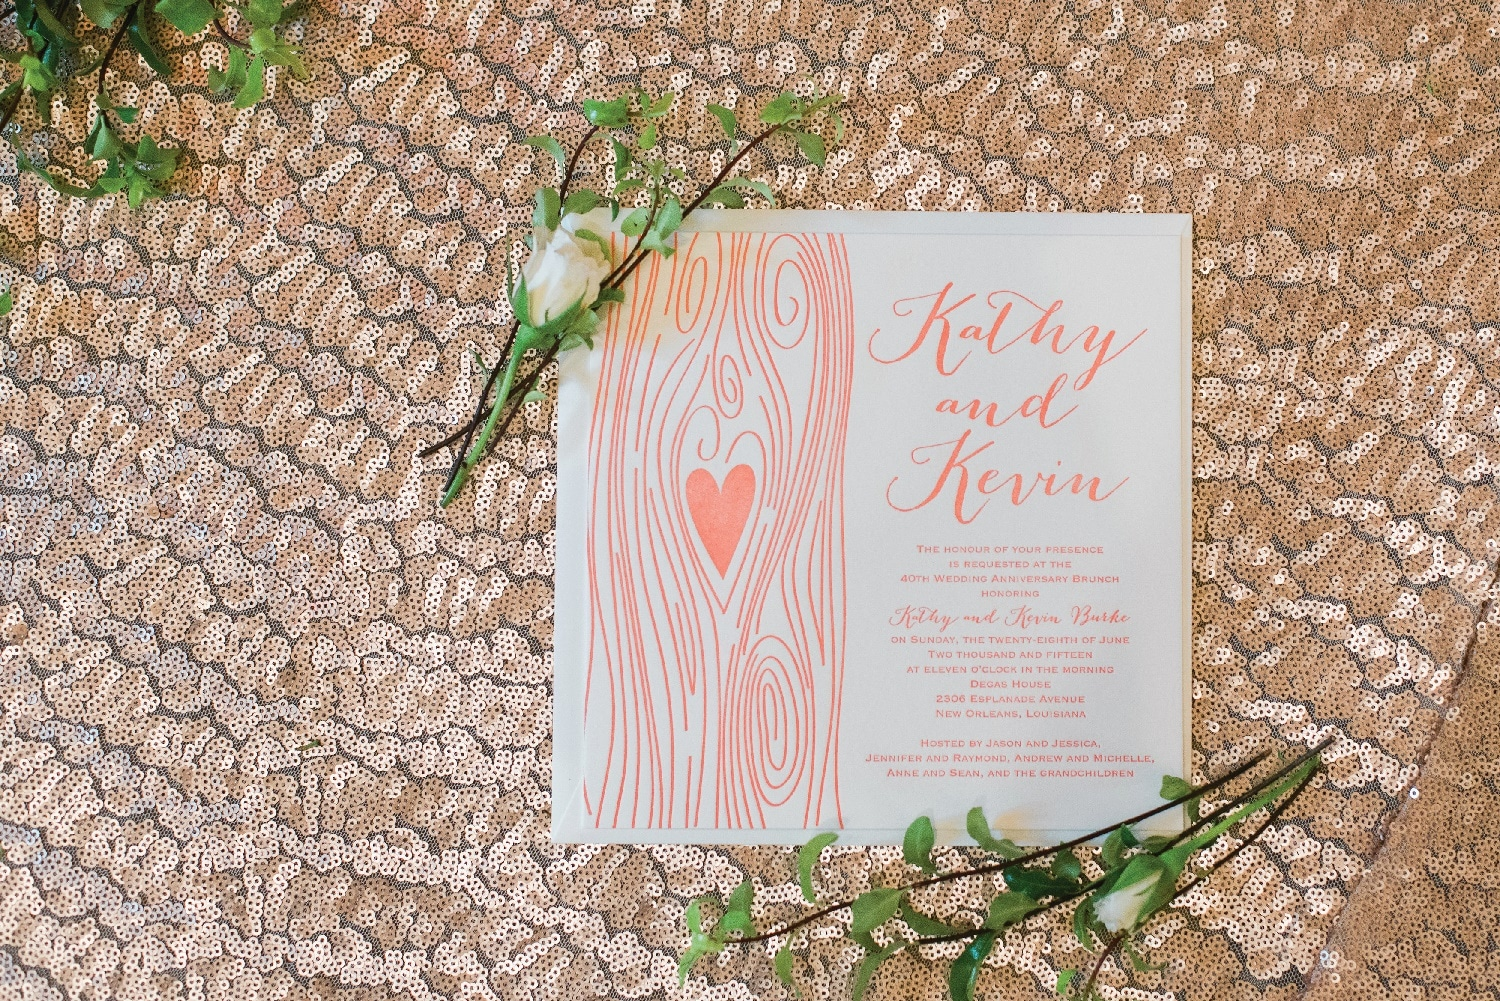 Letterpress style invitation from Abbey Printing. Photo: Red Leaf Weddings